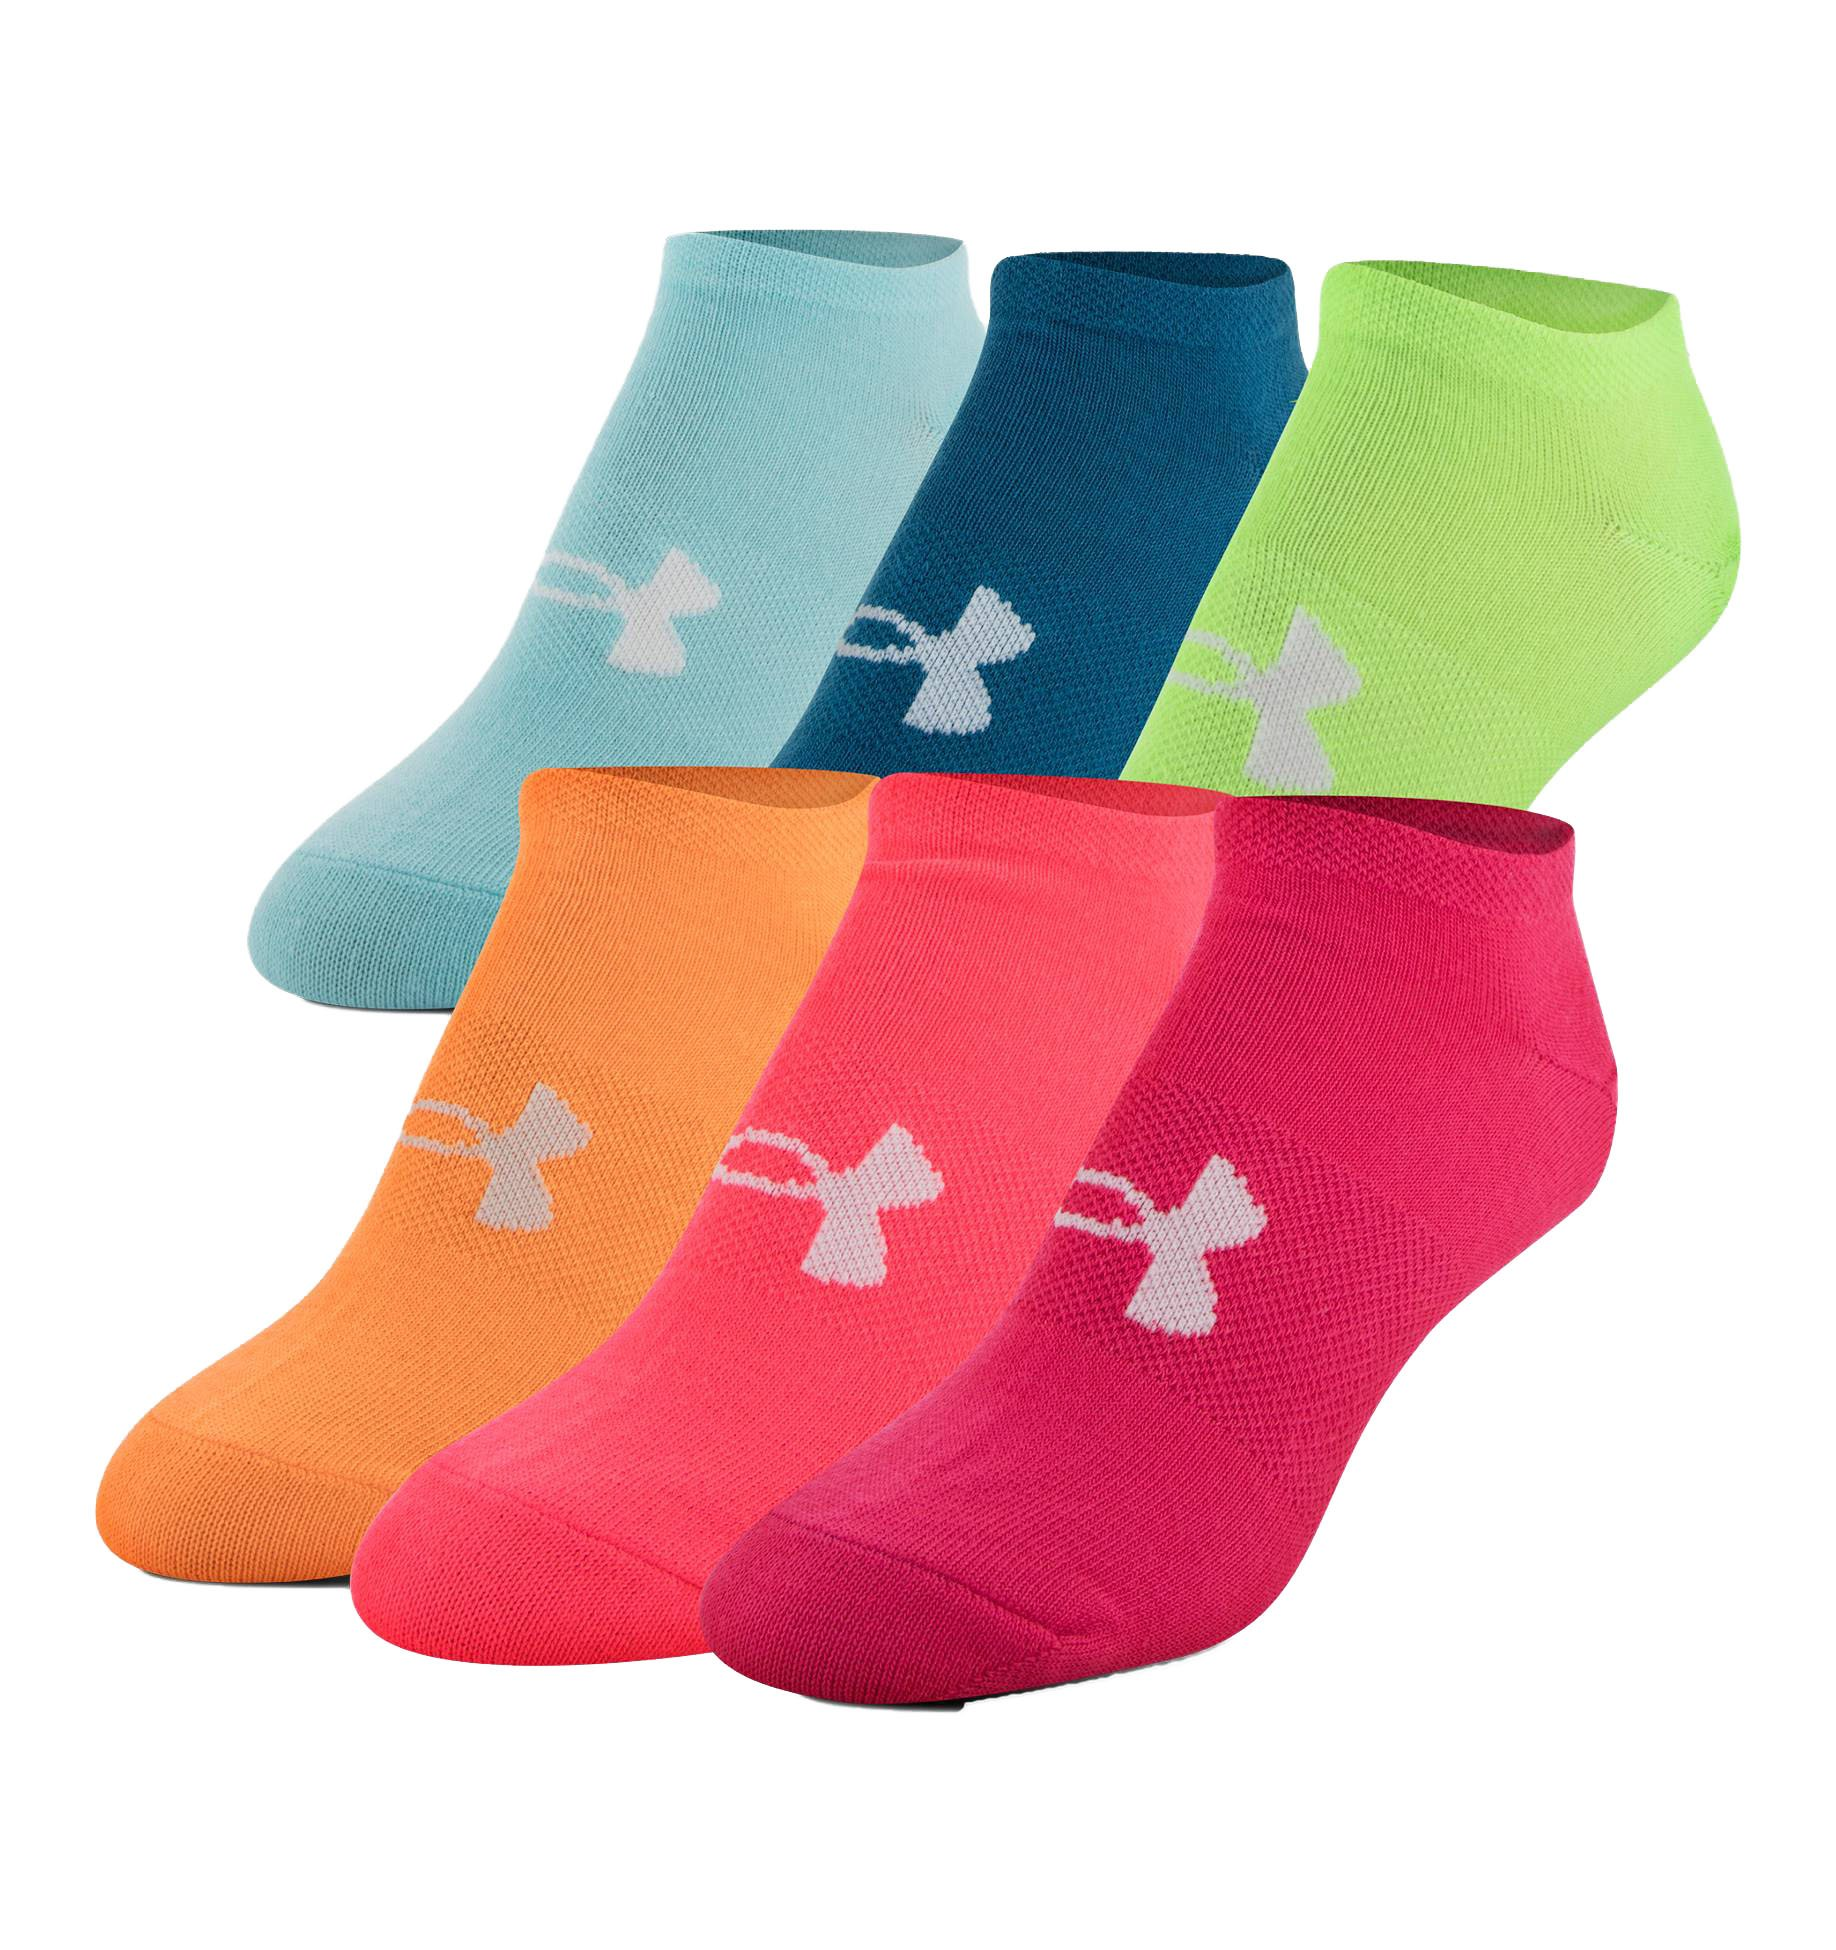 Under Armour Girls Essential No Show Socks (6 Pack) (Youth Small (Youth Shoe Size 13.5K-4Y), Assorted (1264054-975) / Pink/Orange) by Under Armour